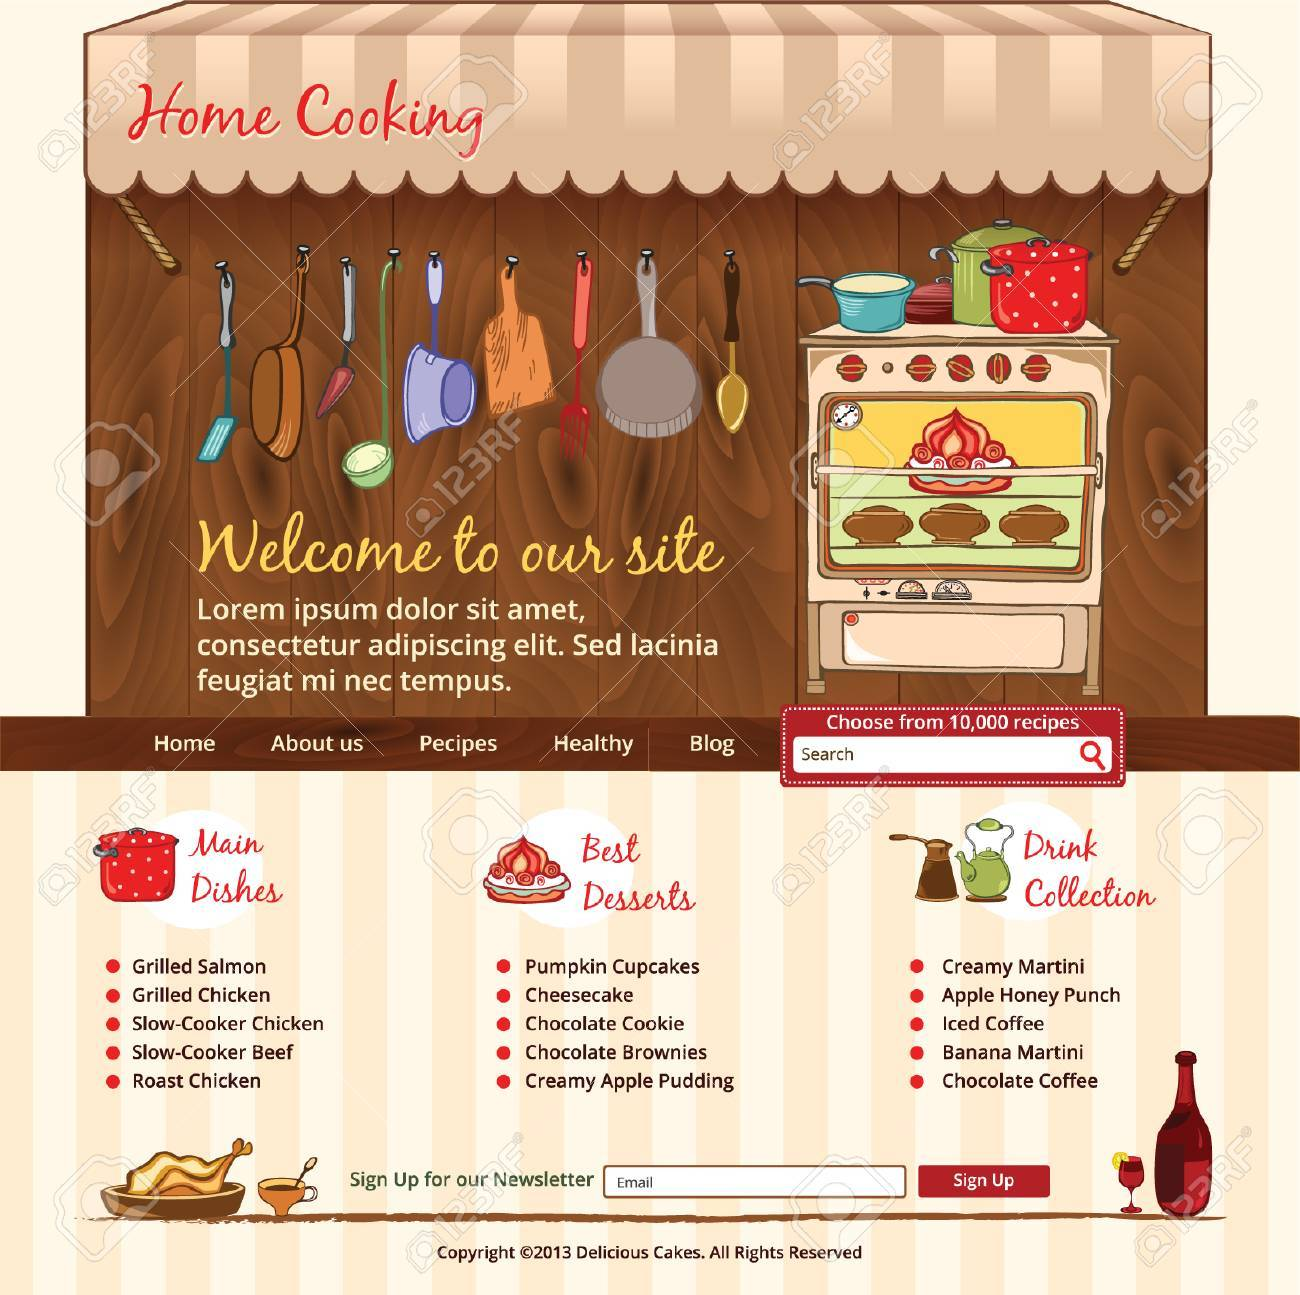 Home Cooking Web Template Royalty Free Cliparts, Vectors, And Stock ...